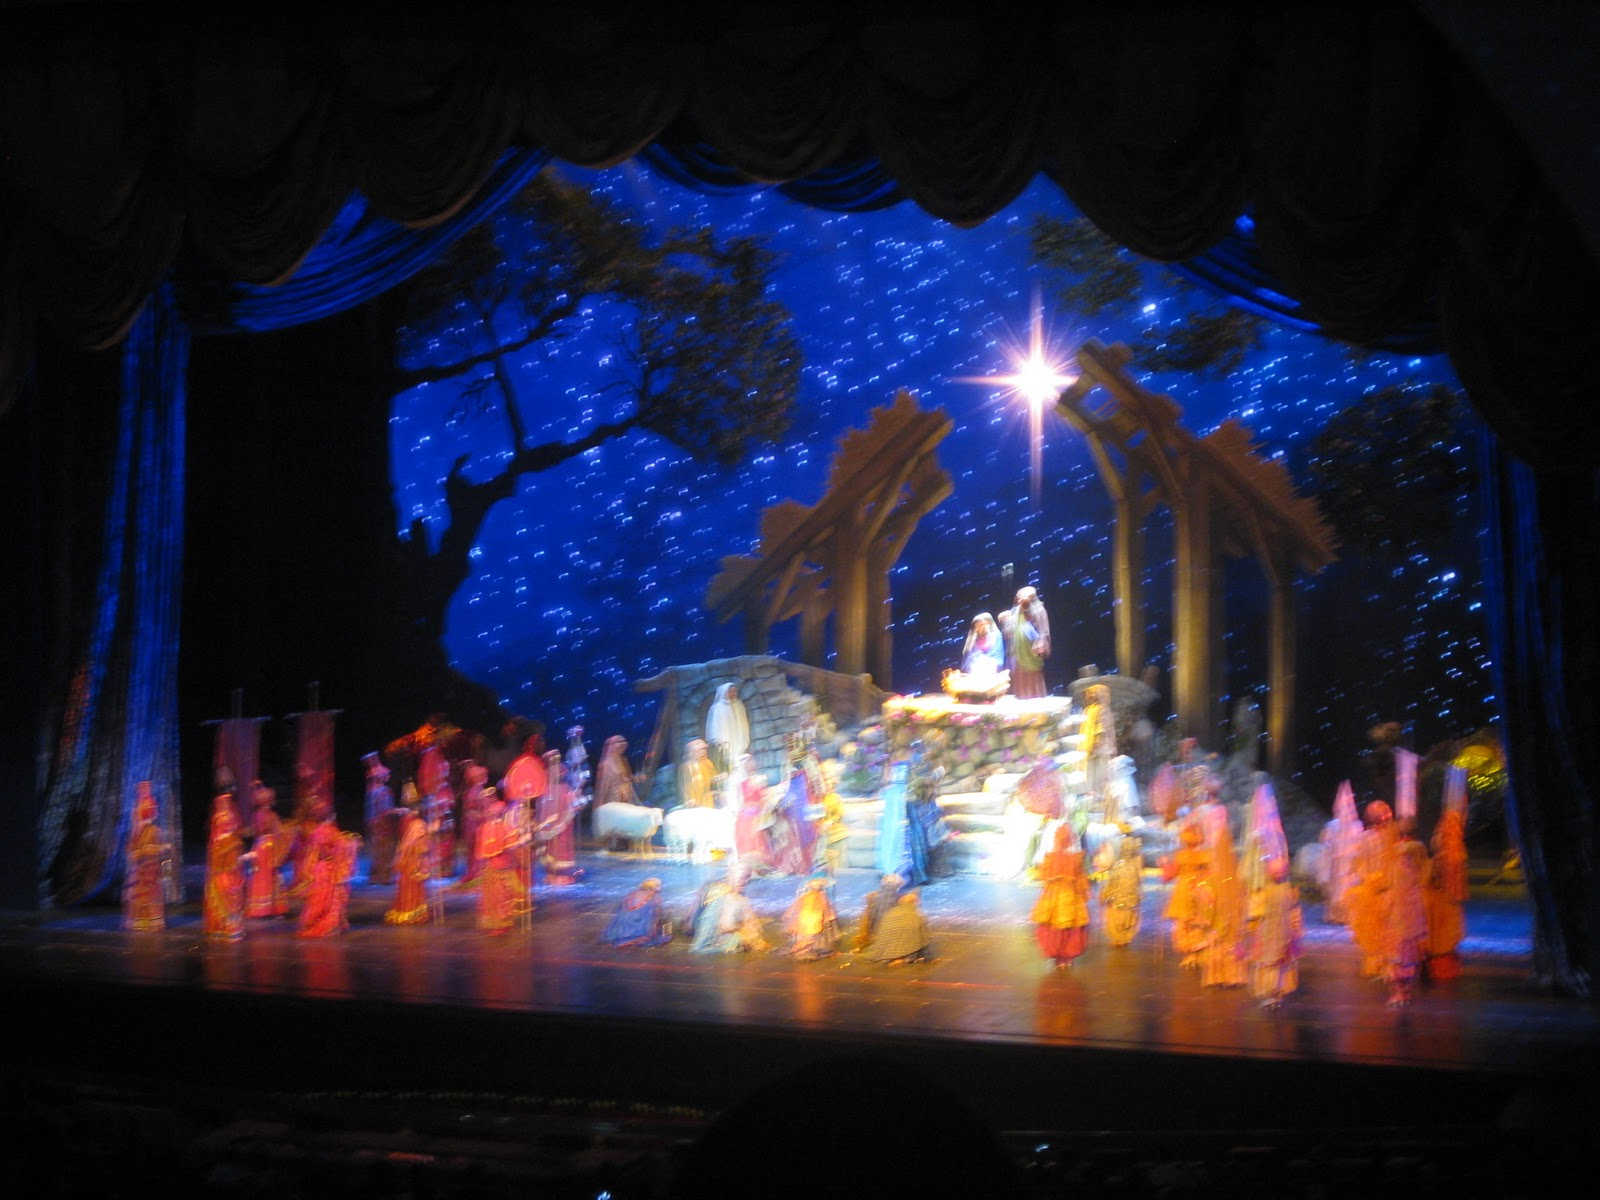 Radio City Christmas Spectacular | The Topping on the Cake